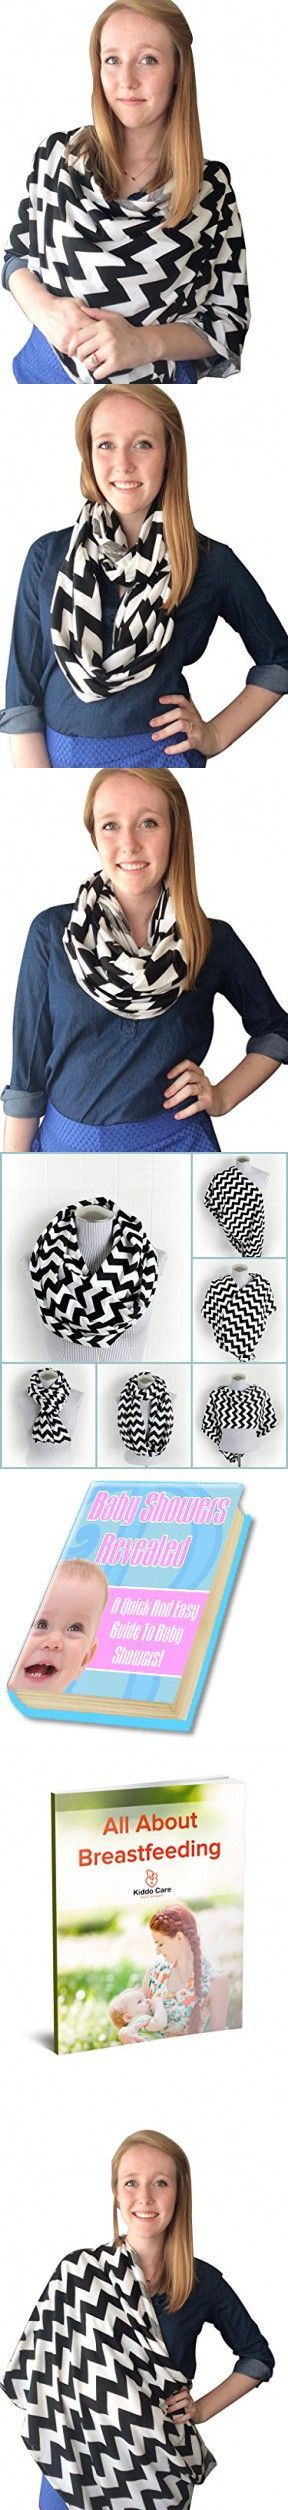 Kiddo Care Nursing Cover Infinity Nursing Scarf for Breastfeeding (Black White Chevron)